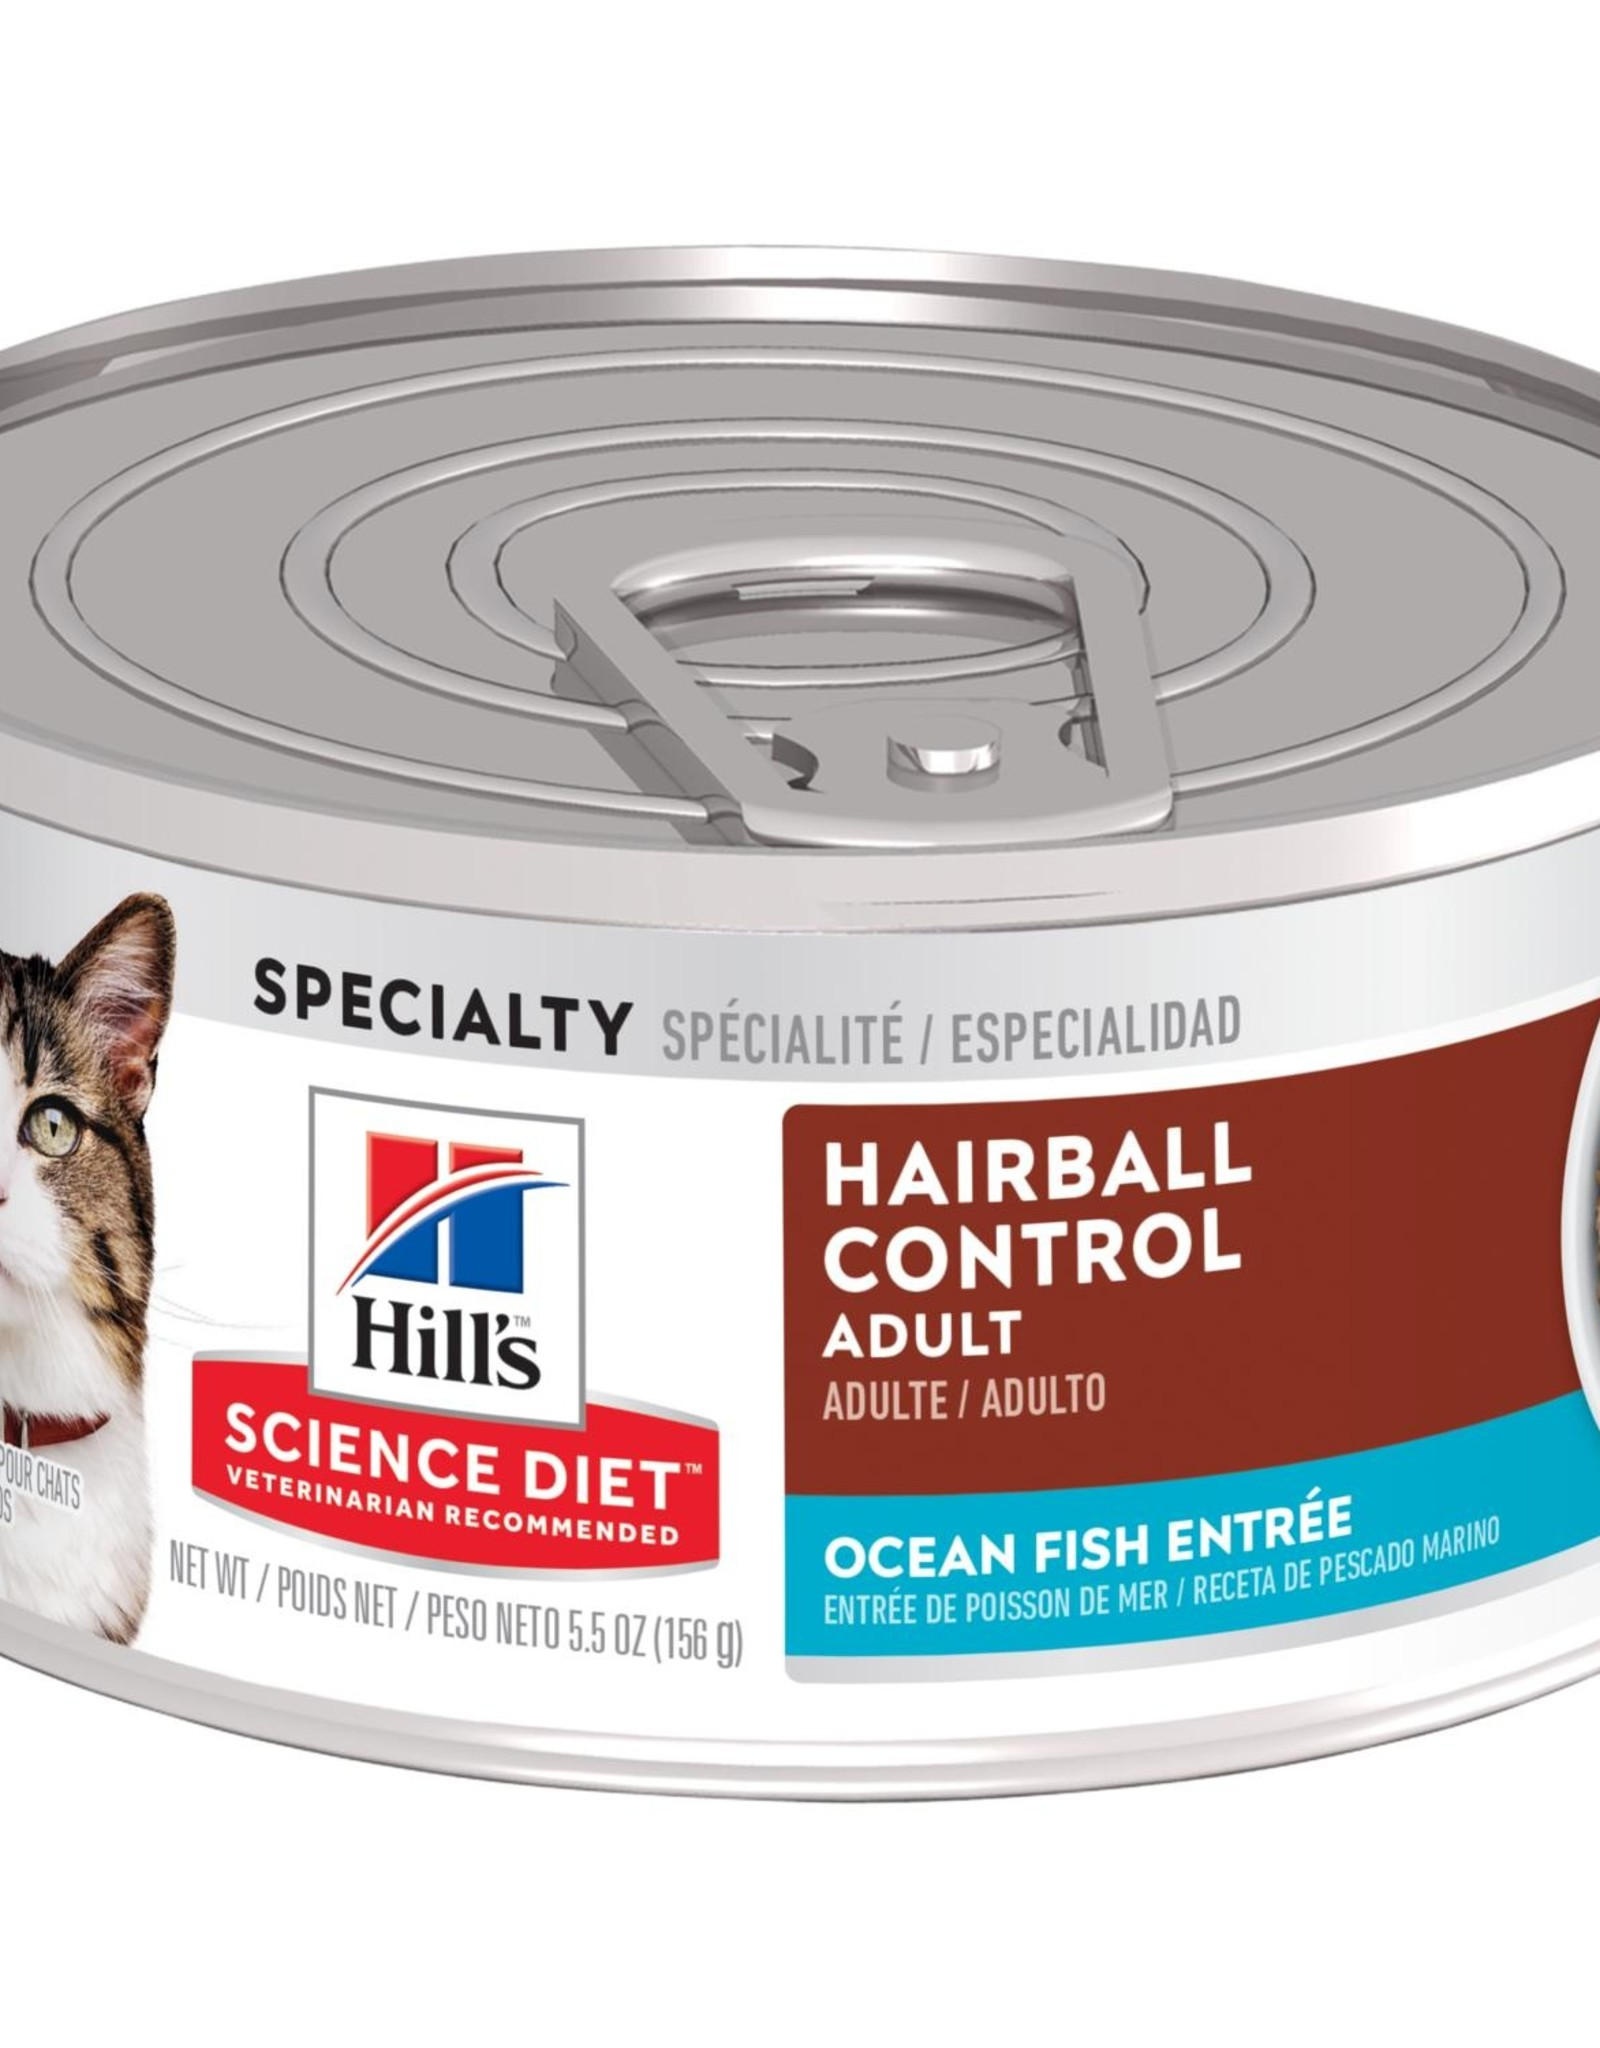 SCIENCE DIET HILL'S SCIENCE DIET FELINE CAN ADULT HAIRBALL SEAFOOD 5.5OZ CASE OF 24